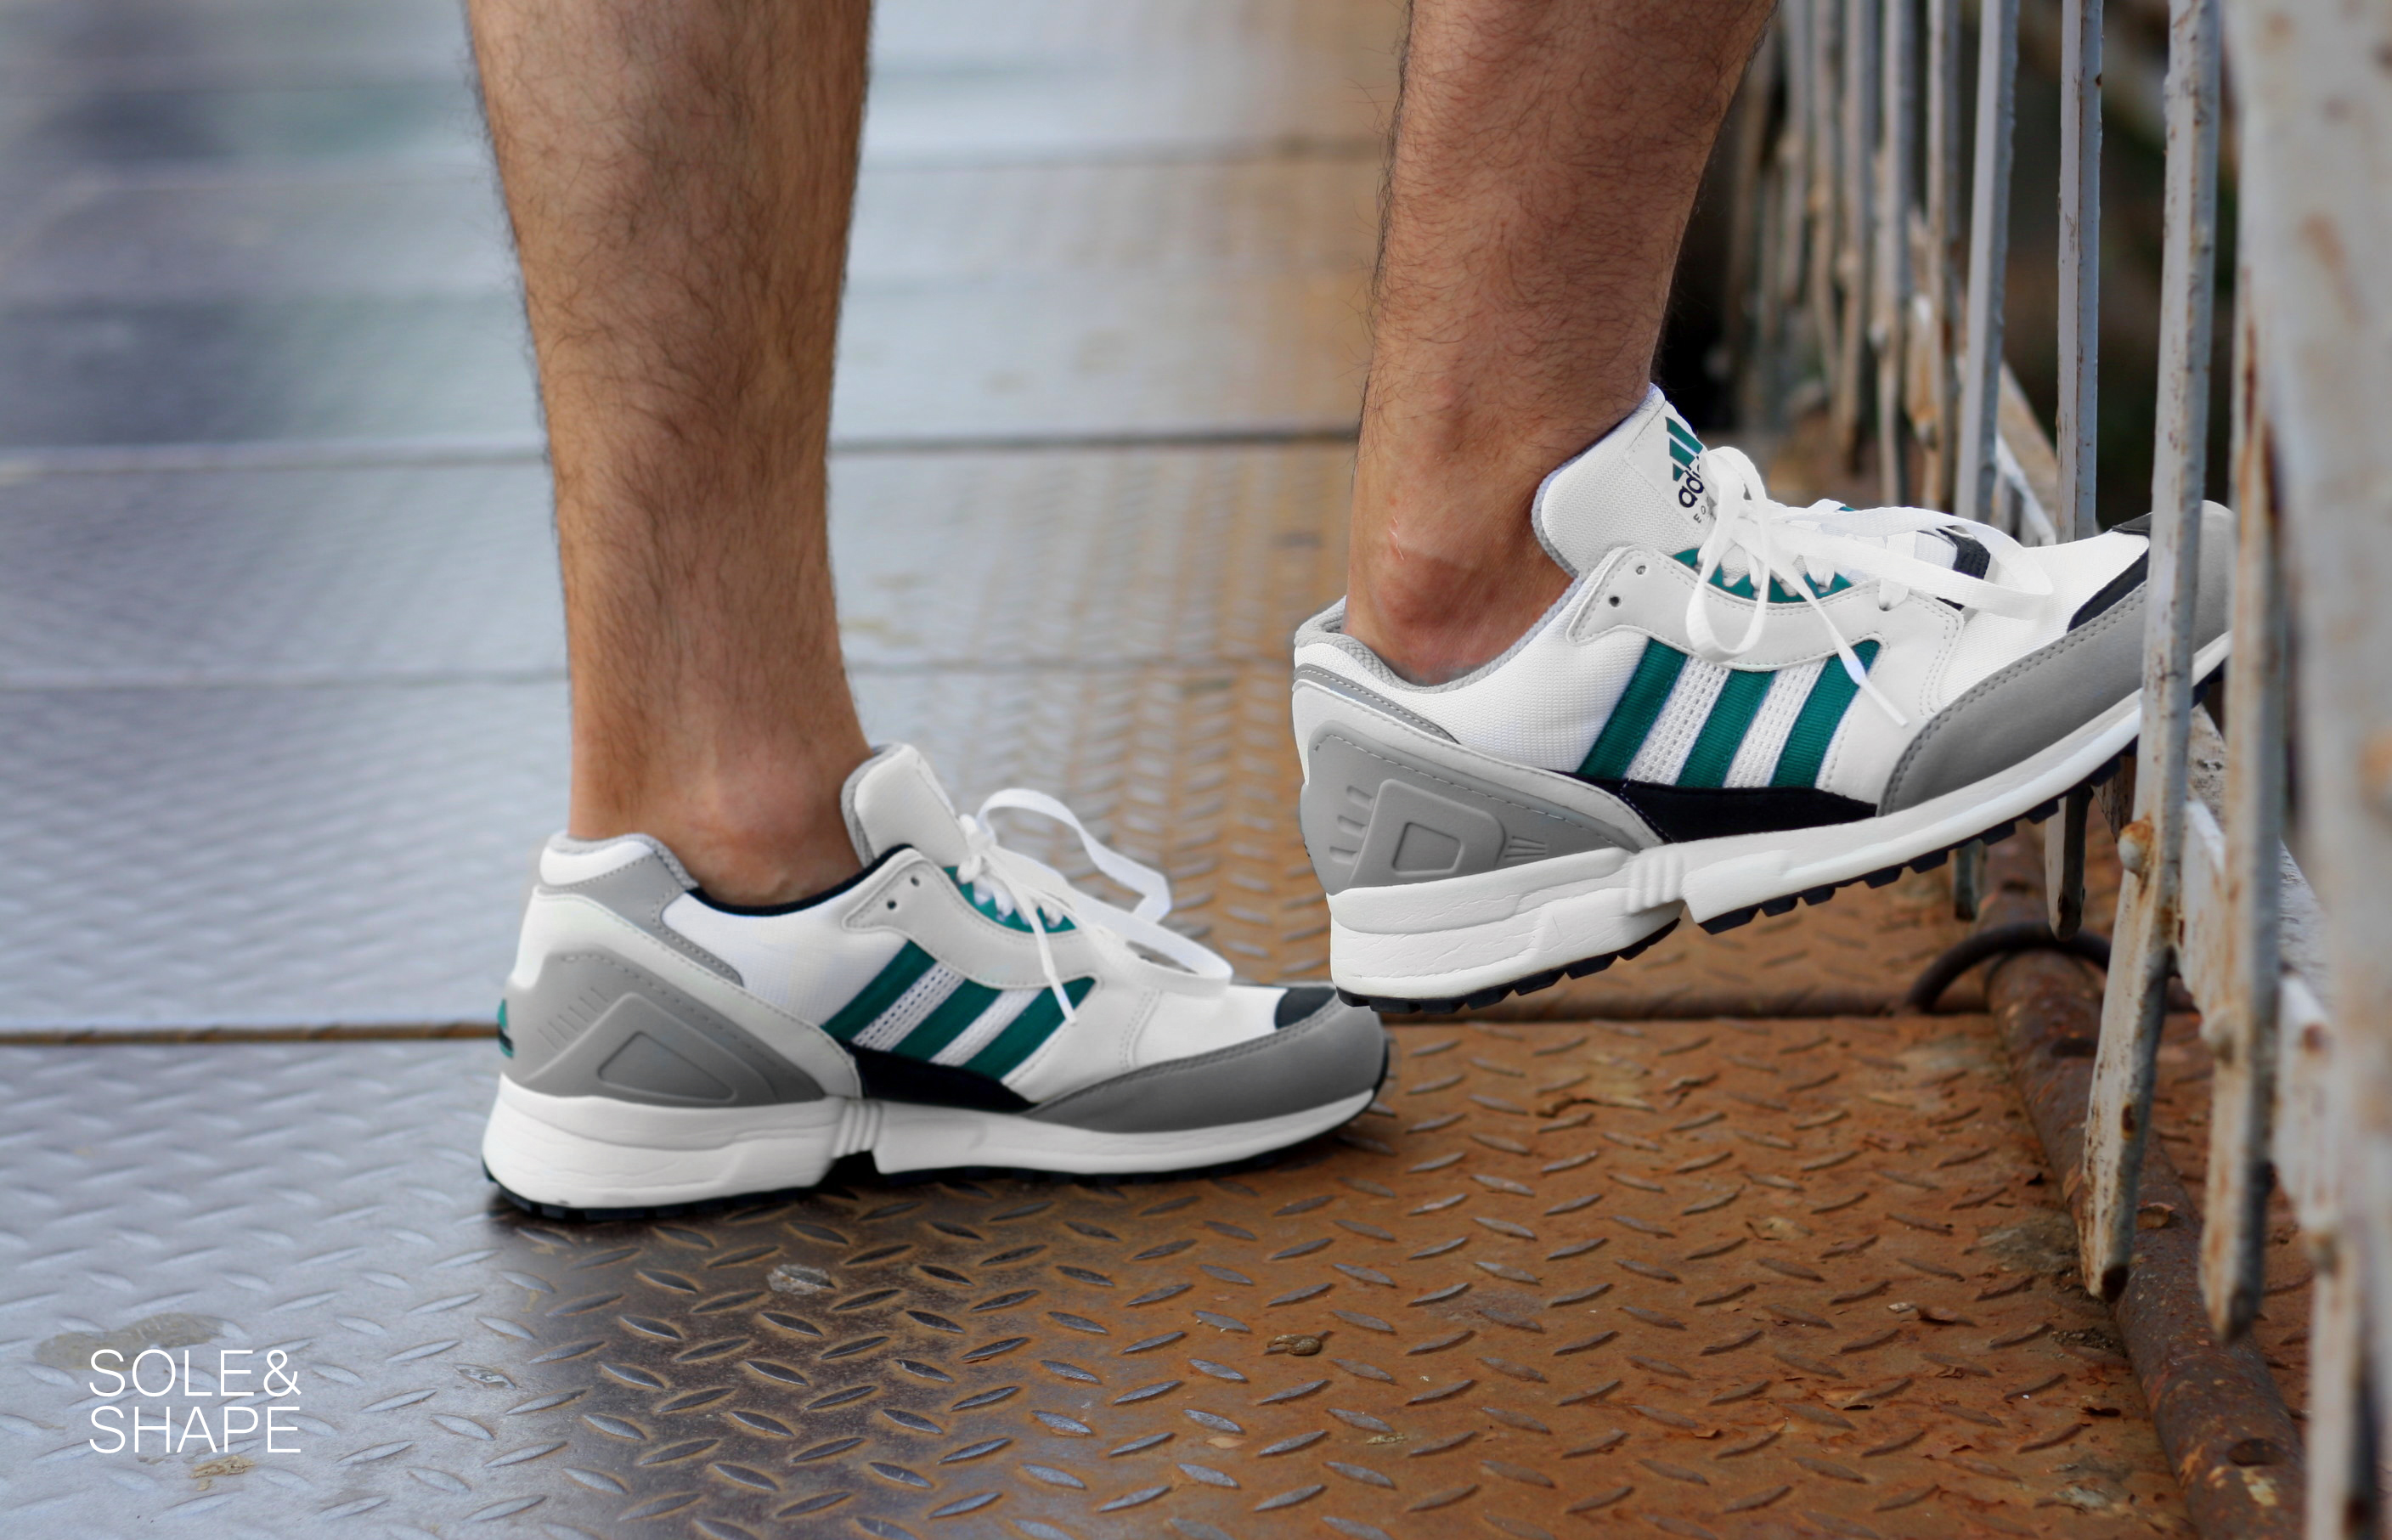 check out 2b427 b040c On feet: Adidas EQT Running Cushion '91 OG – SOLE & SHAPE®